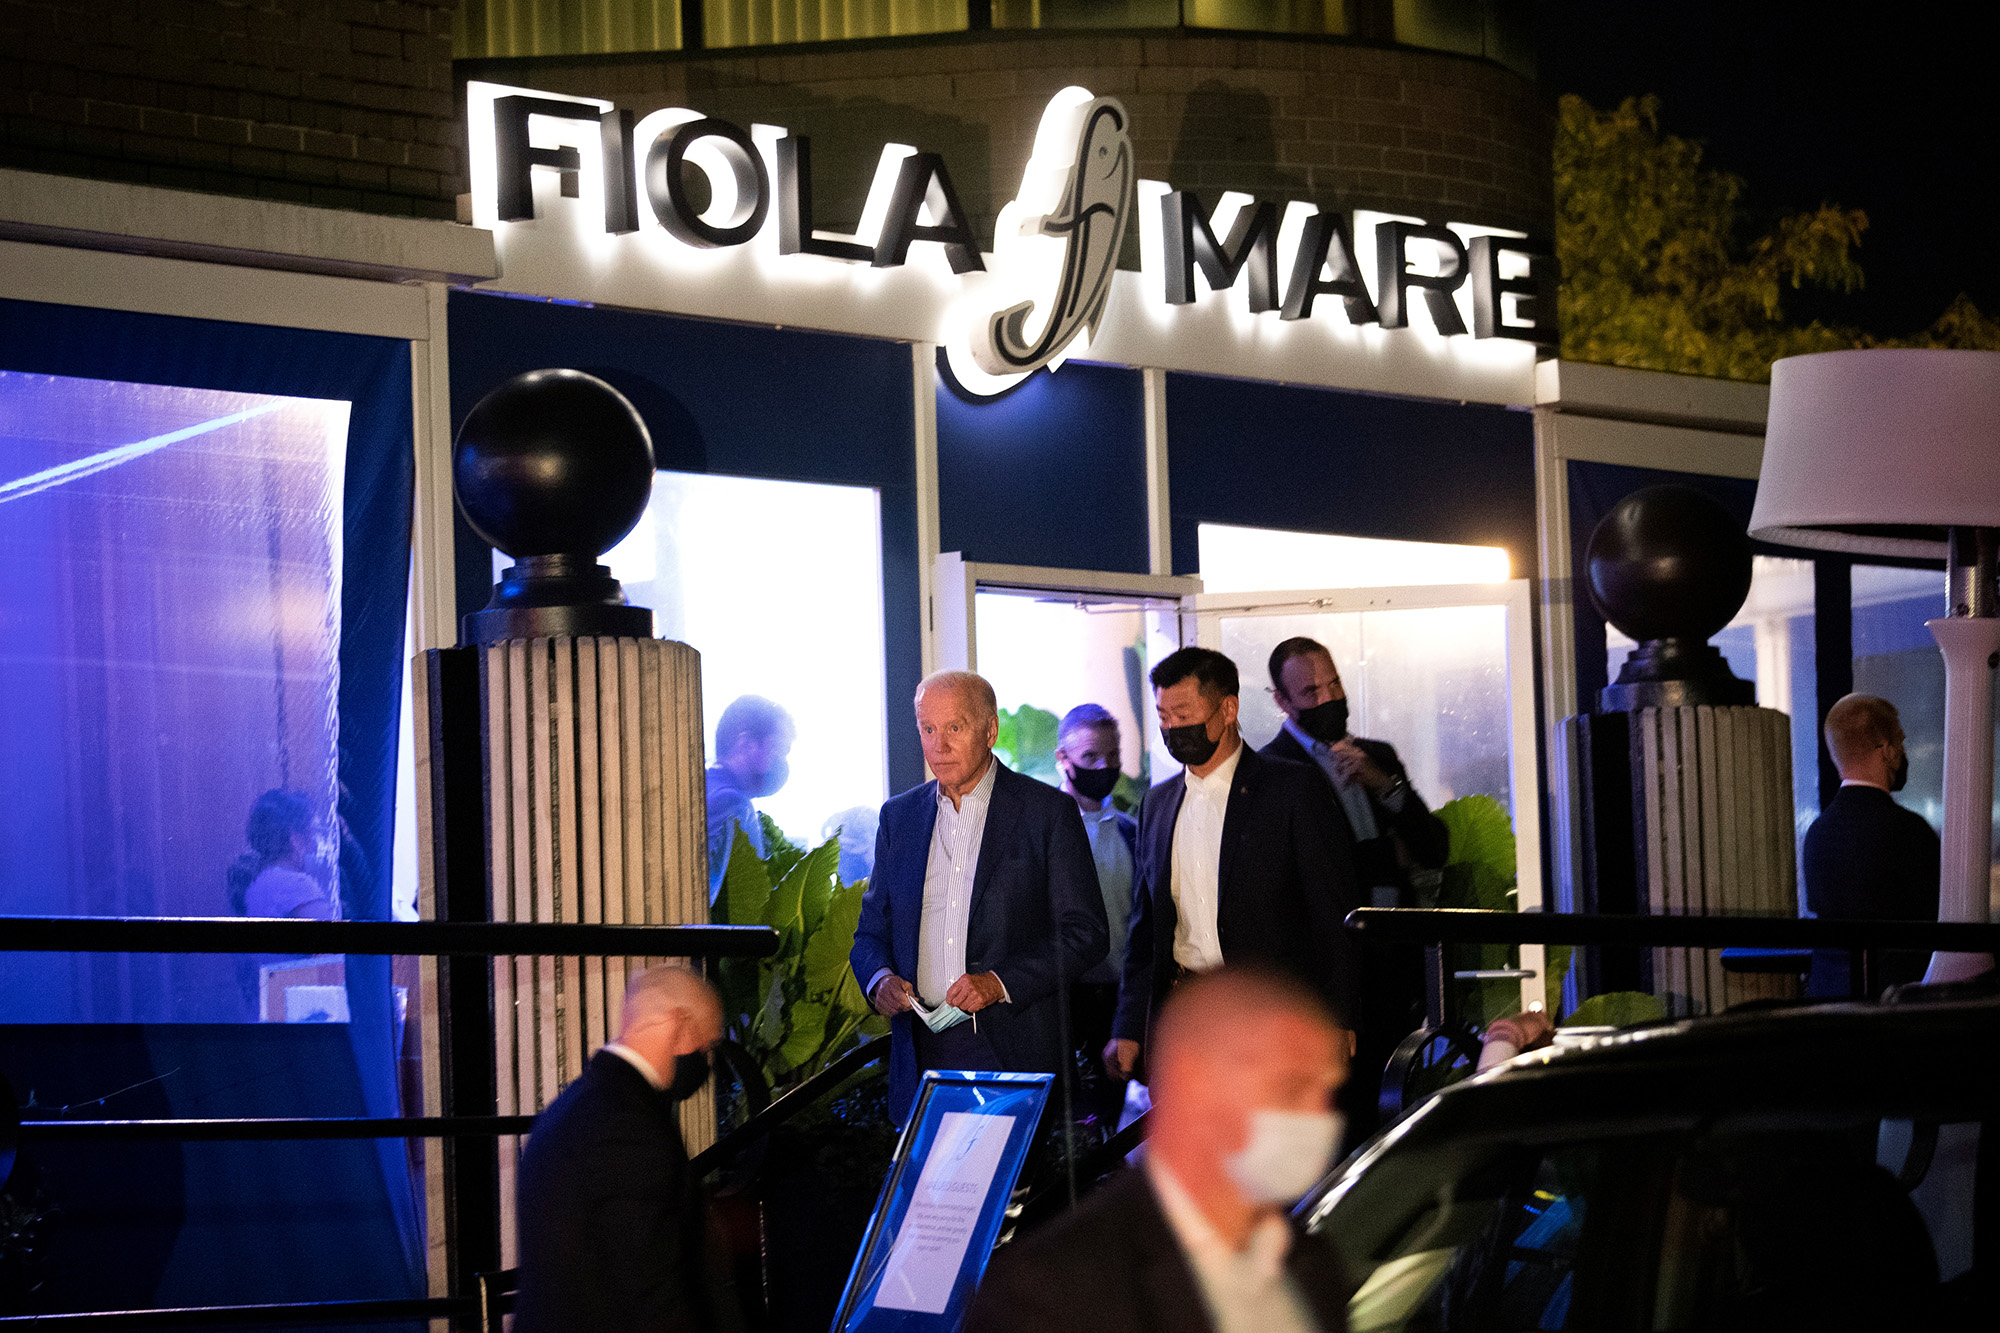 President Joe Biden and first lady Jill Biden went to Fiola Mare on October 16, 2021 for a date night.